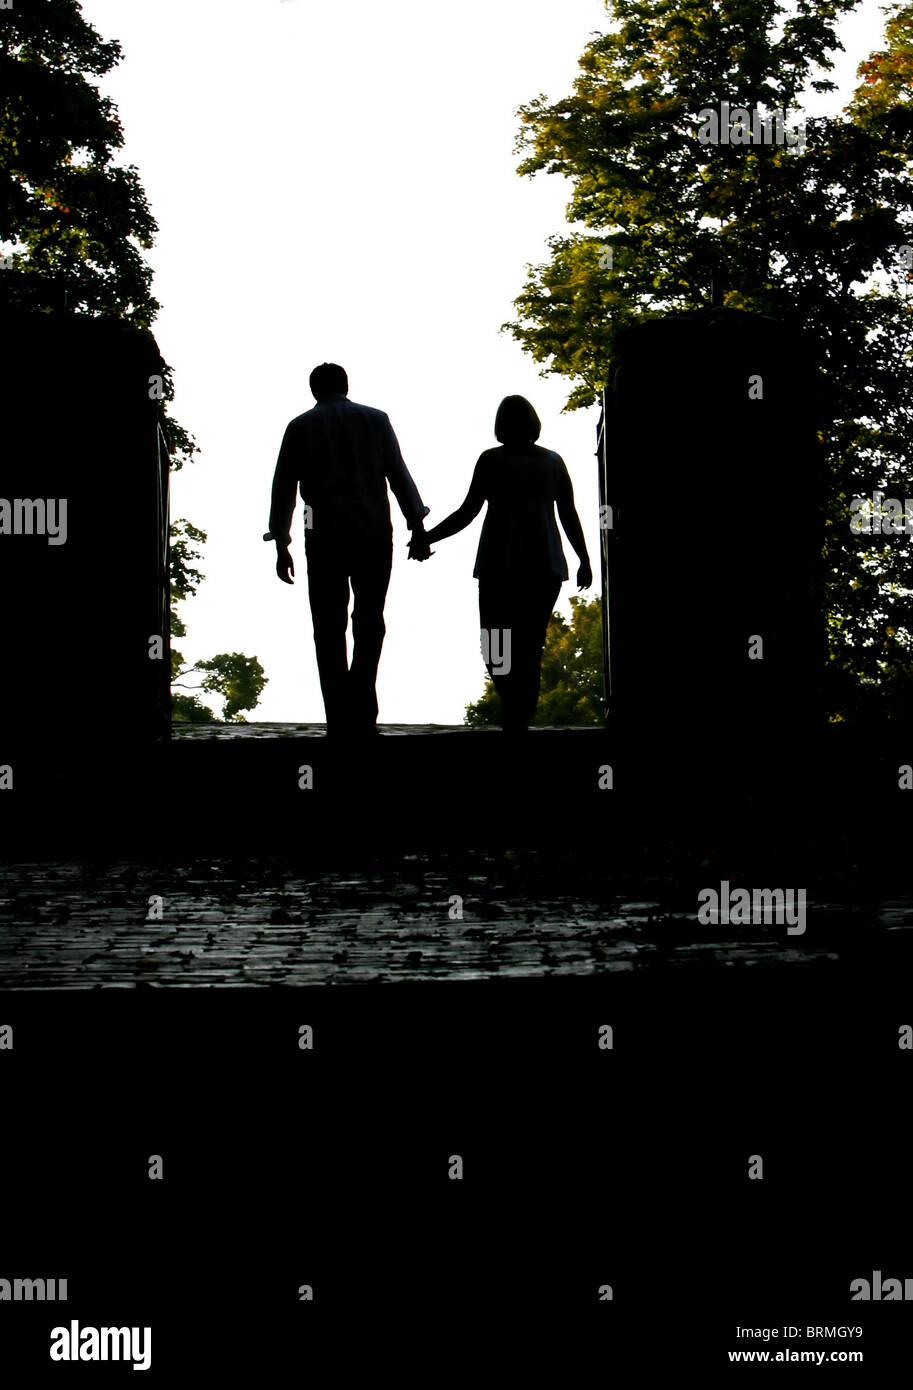 man walking away from a woman silhouette of a man and woman walking away as a couple 4958